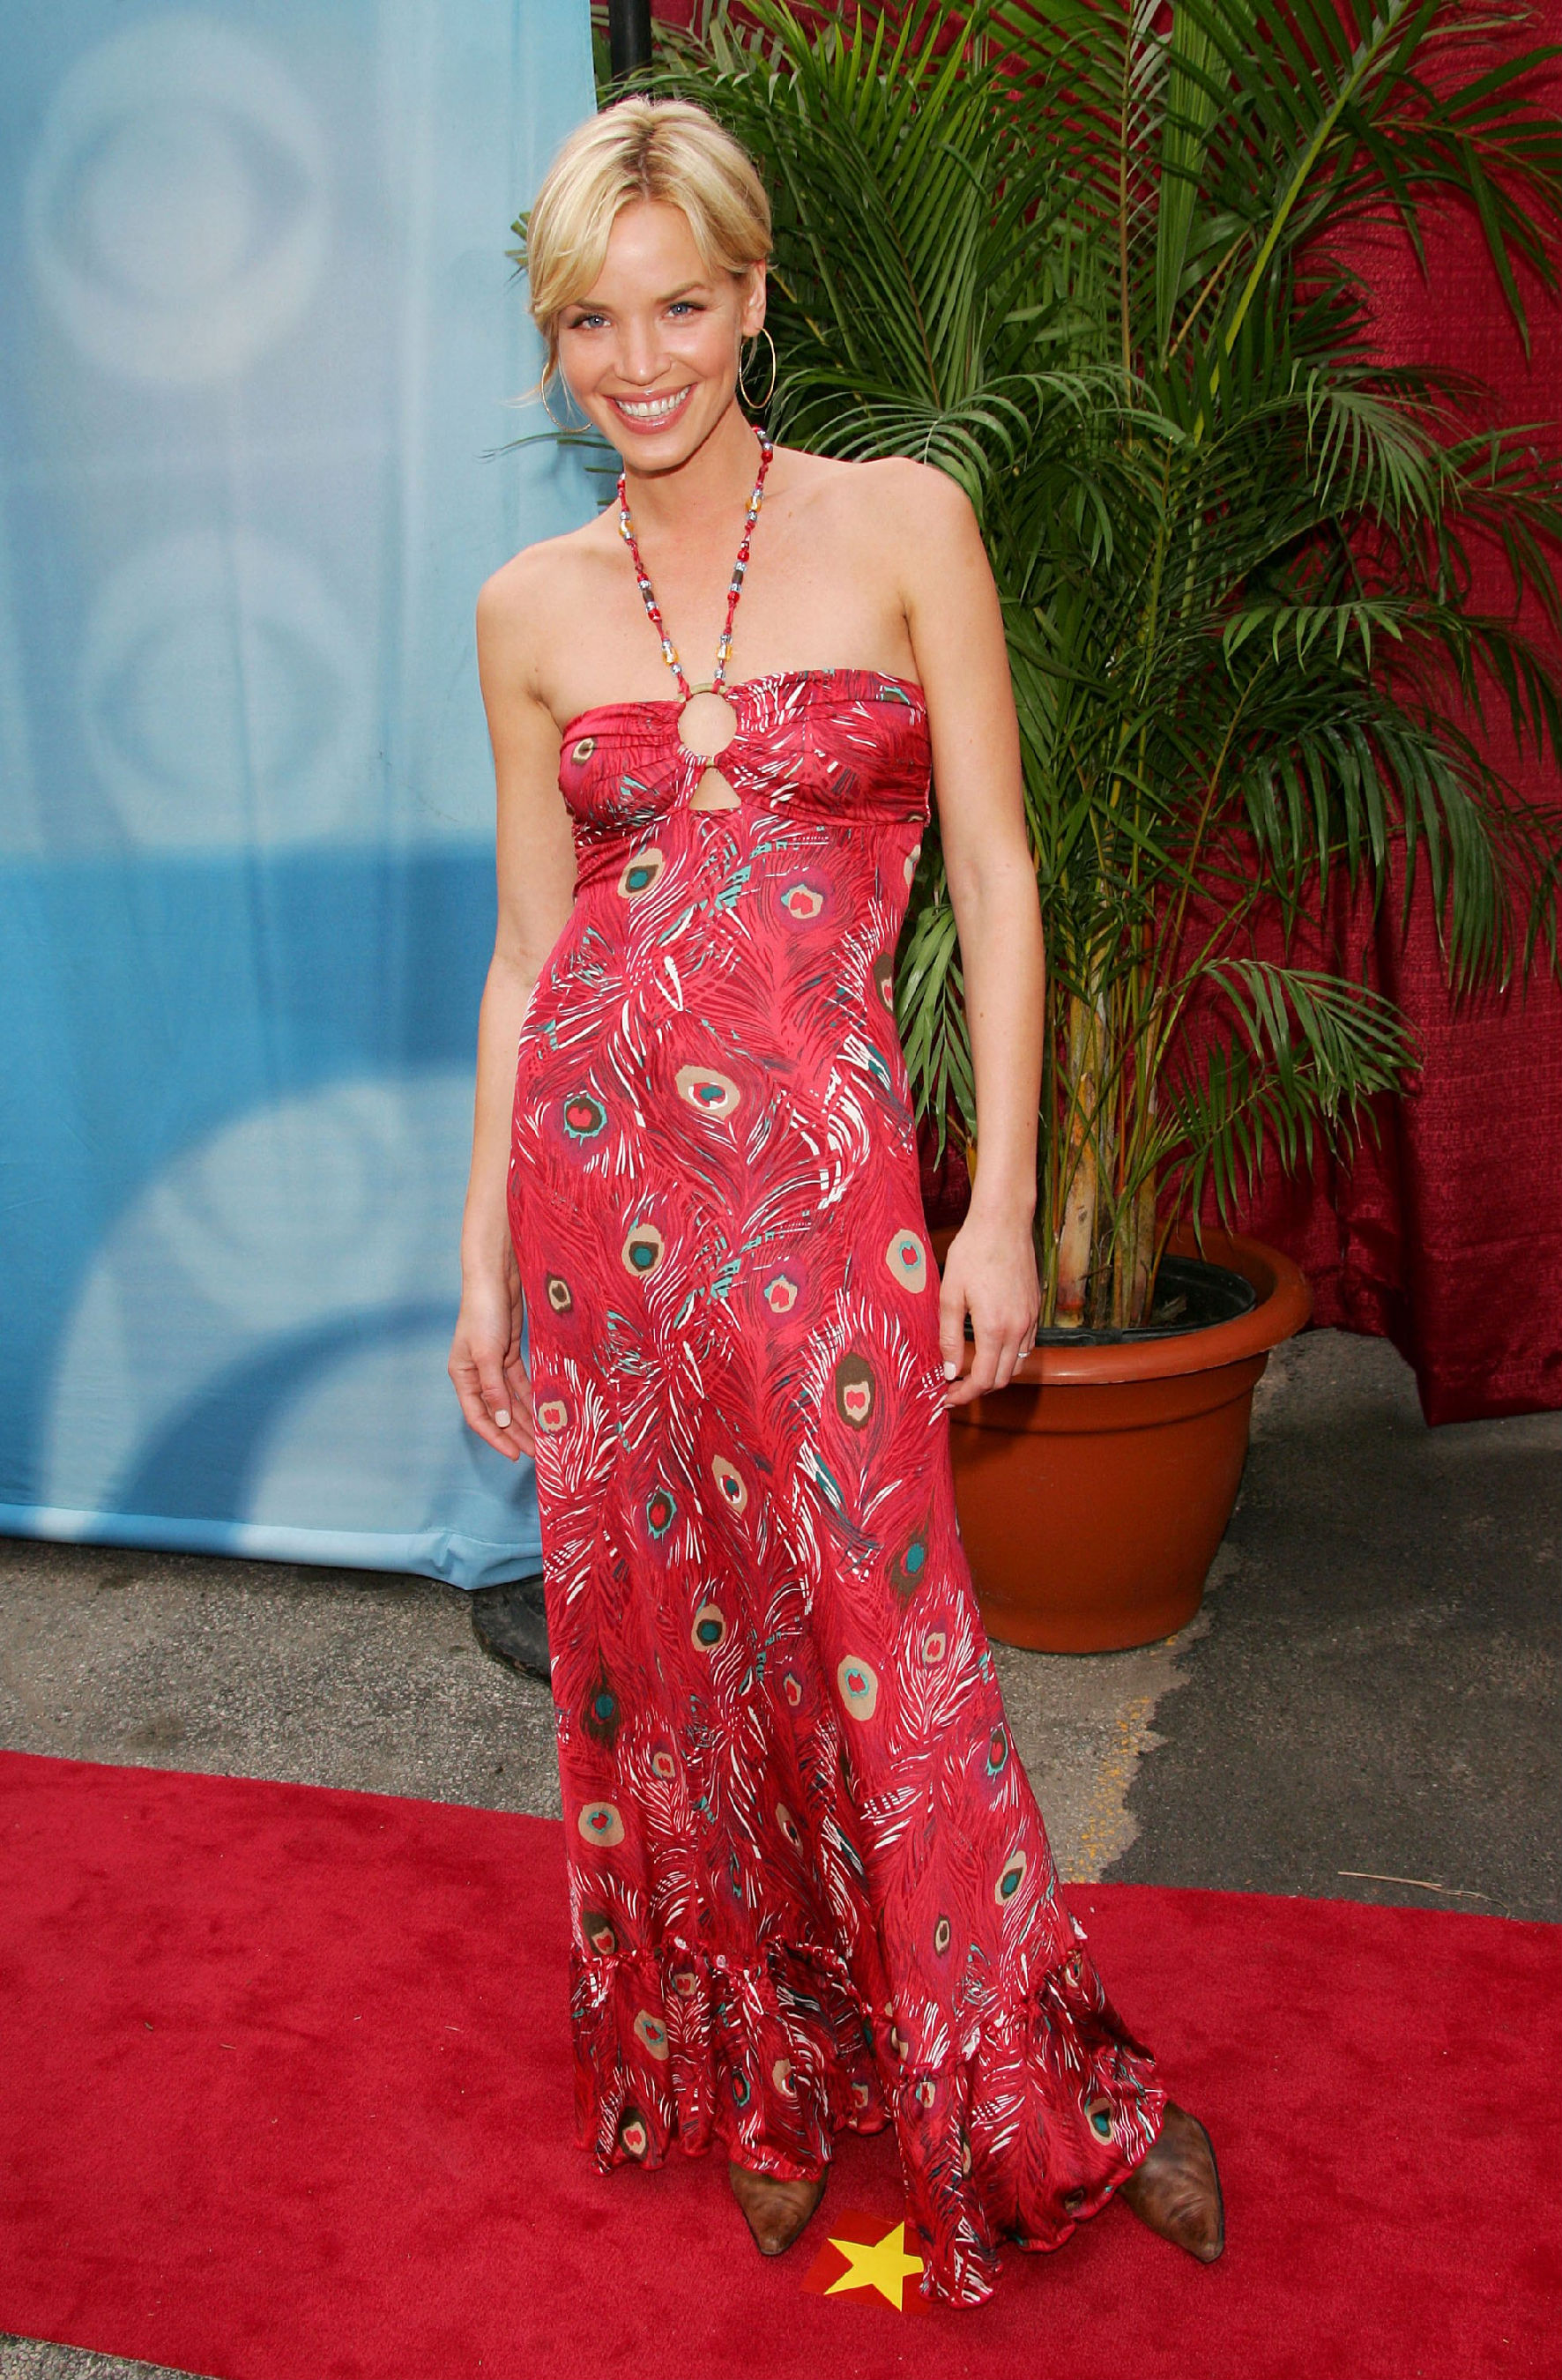 High Definition New Wallpapers: Ashley Scott Wallpapers